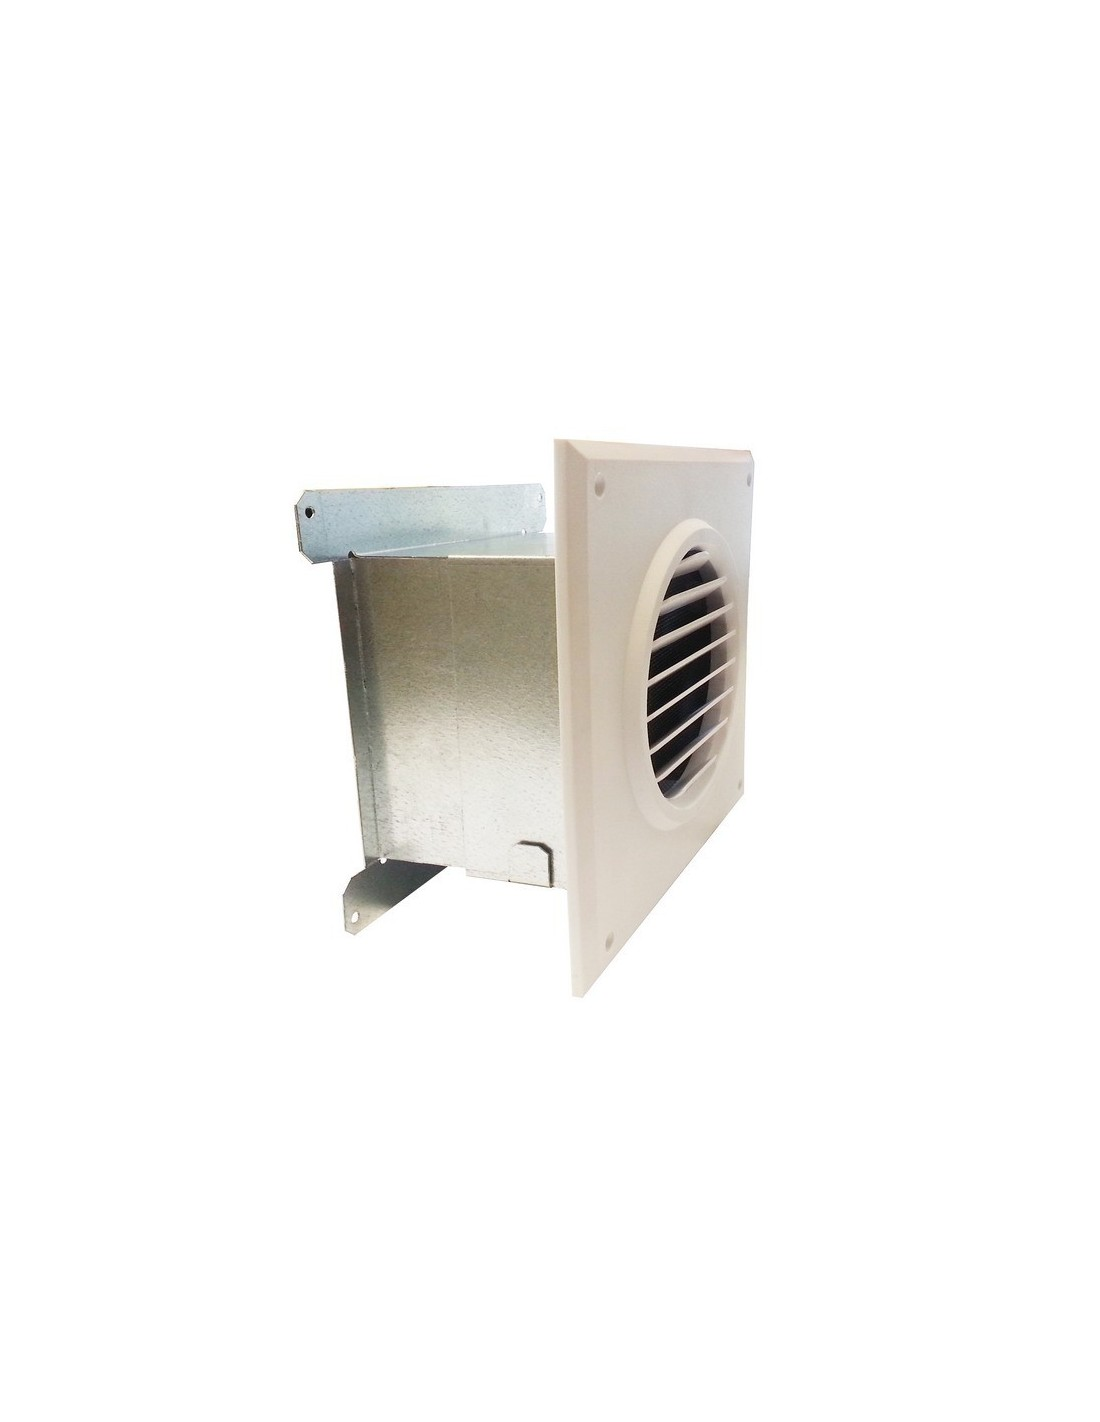 Ventilateur Pour Cheminee Insert Installation Climatisation Gainable Grille Ventilation